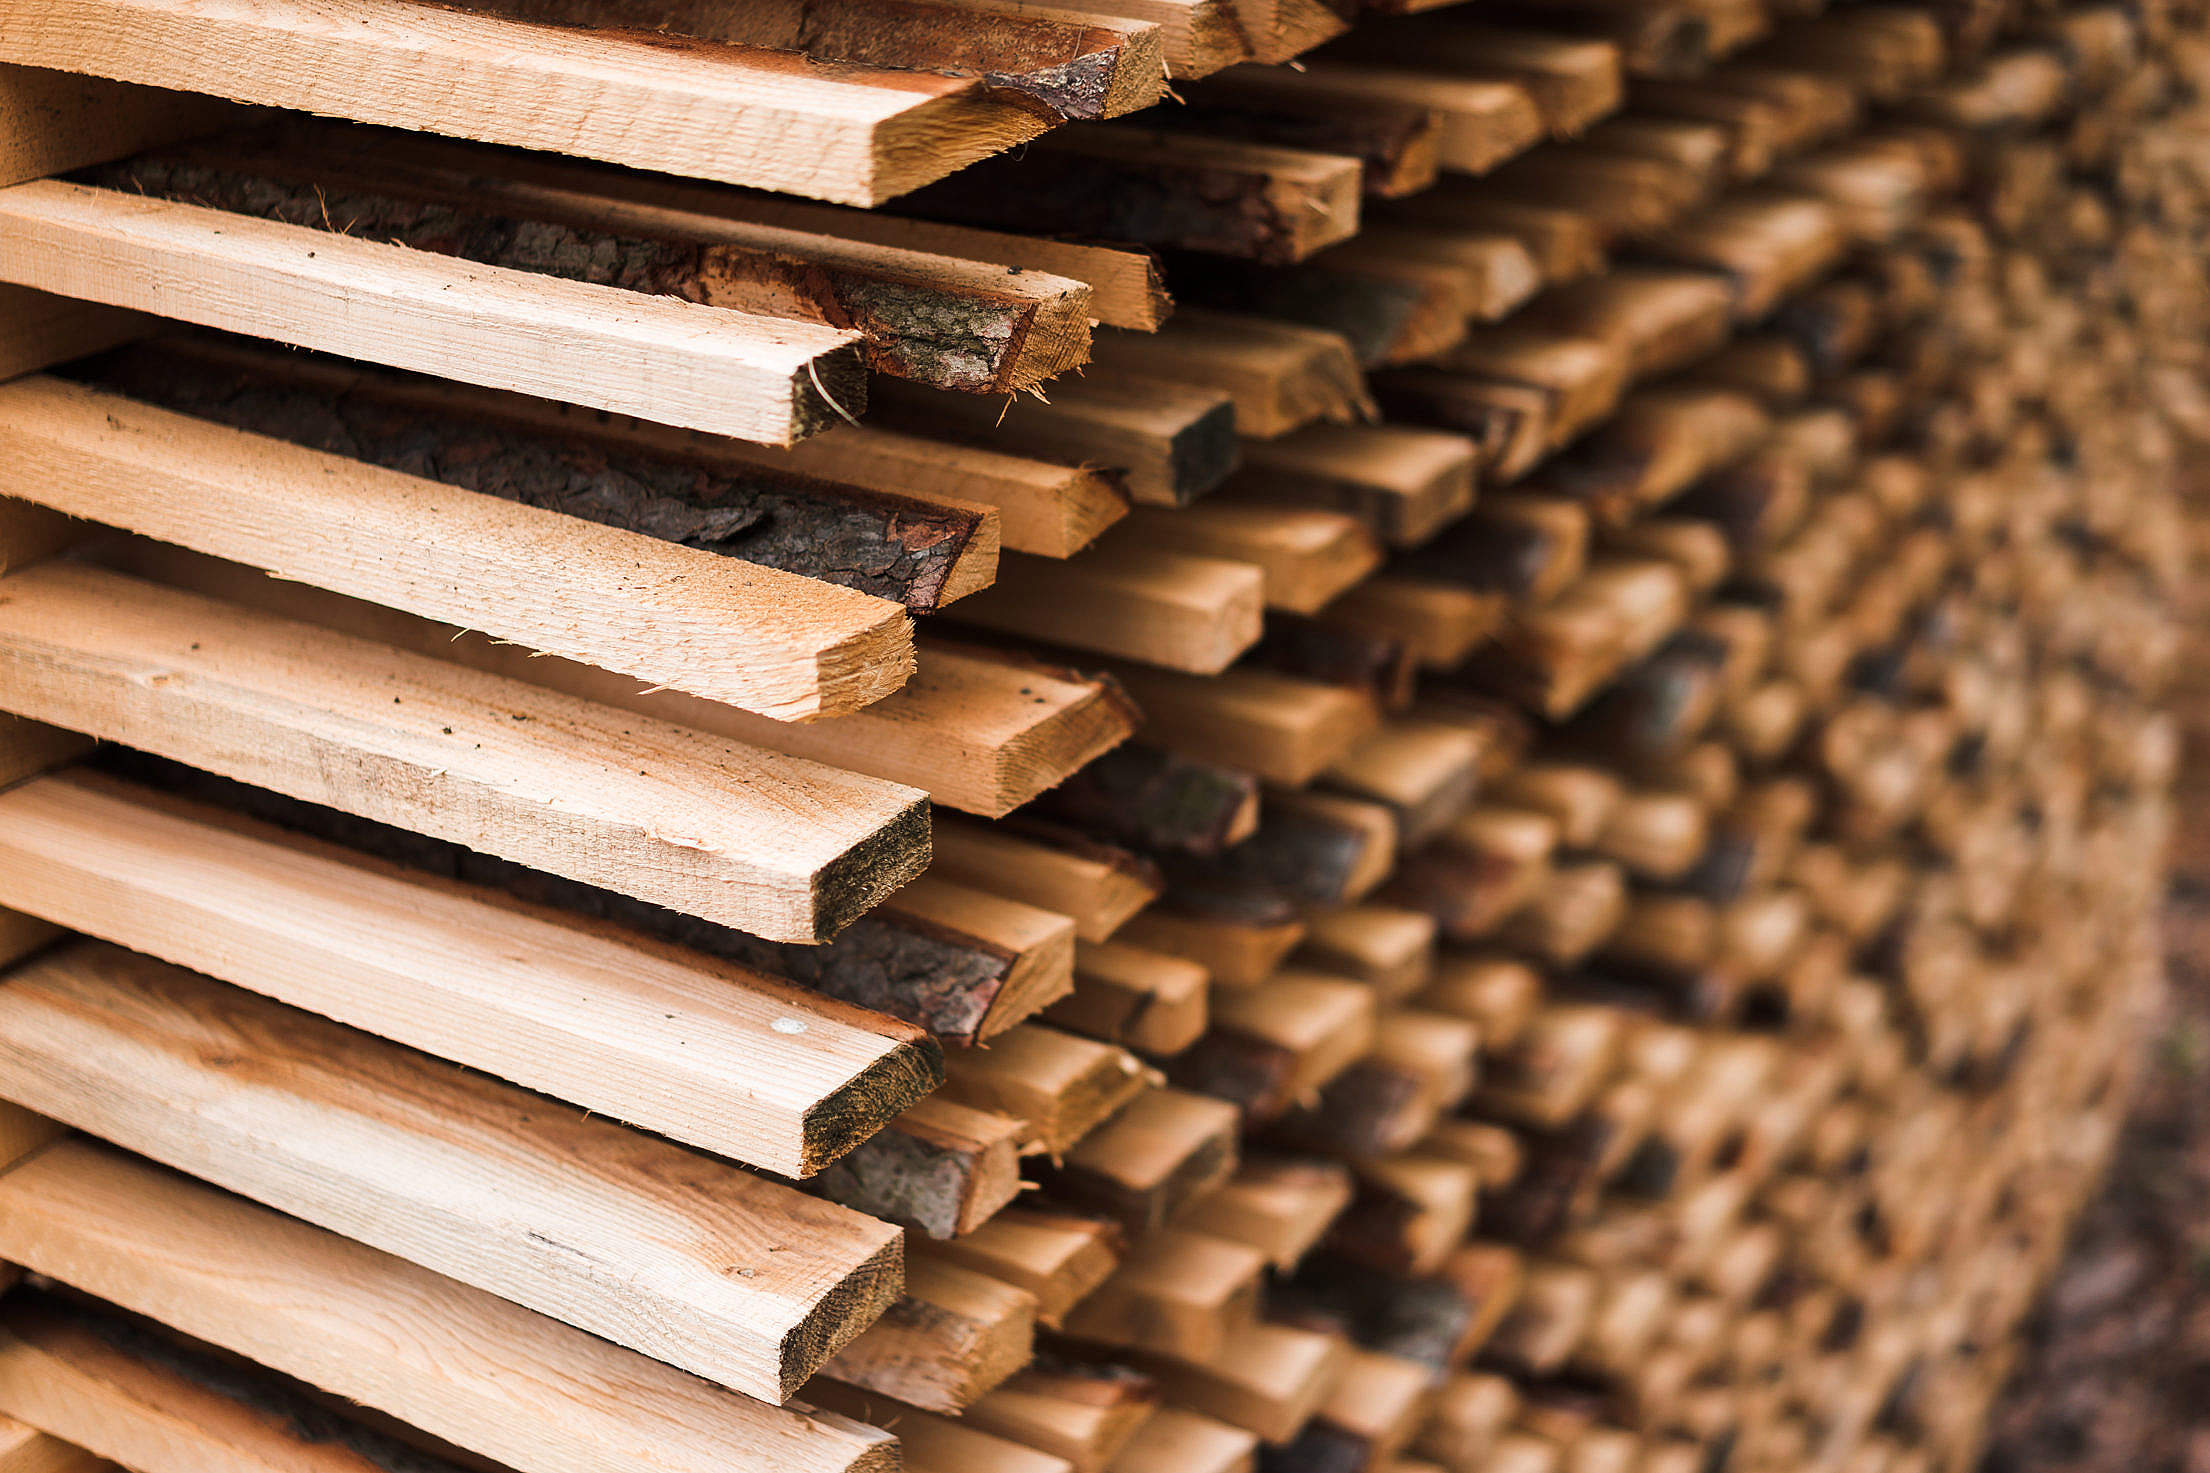 Freshly Cut Wood Stacked for Lumber Air Drying Free Stock Photo